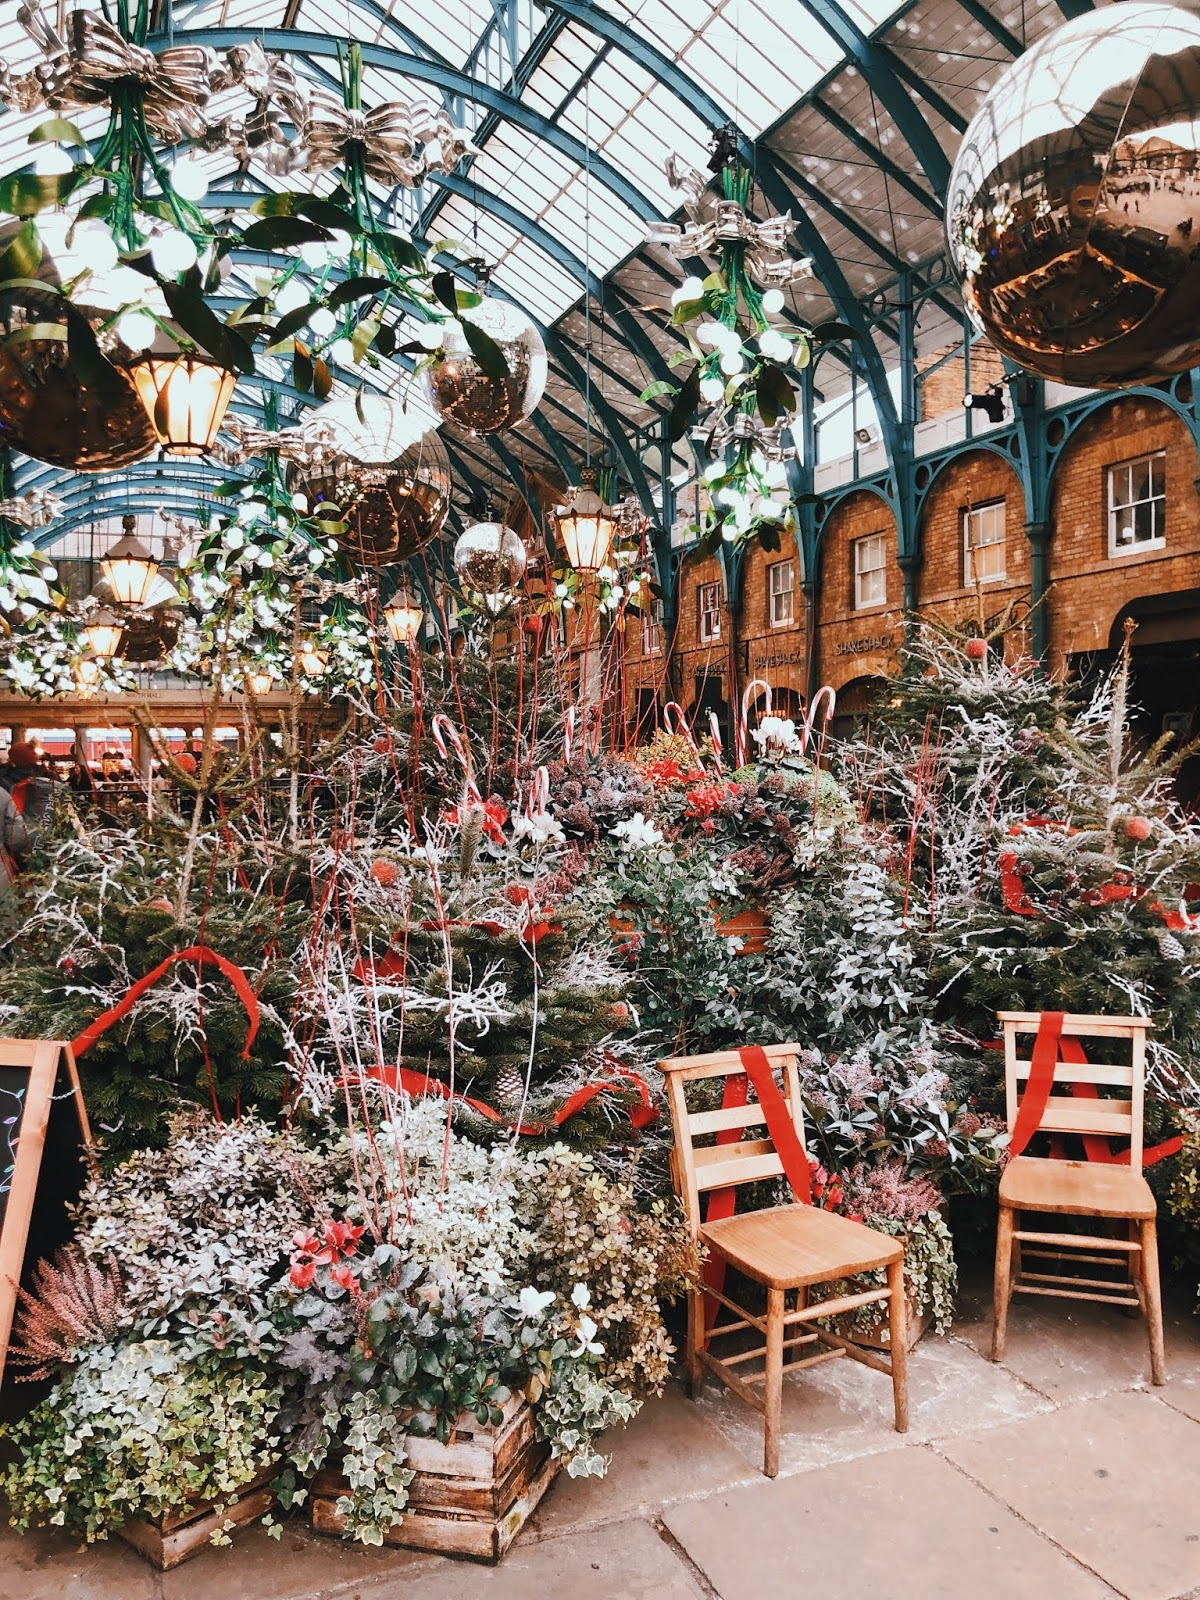 christmas in london, christmas decoration in london, christmas 2018, christmas decoration london 2018, indian blogger, london blogger, covent garden christmas decoration, christmas red, covent garden 2018, covent garden,